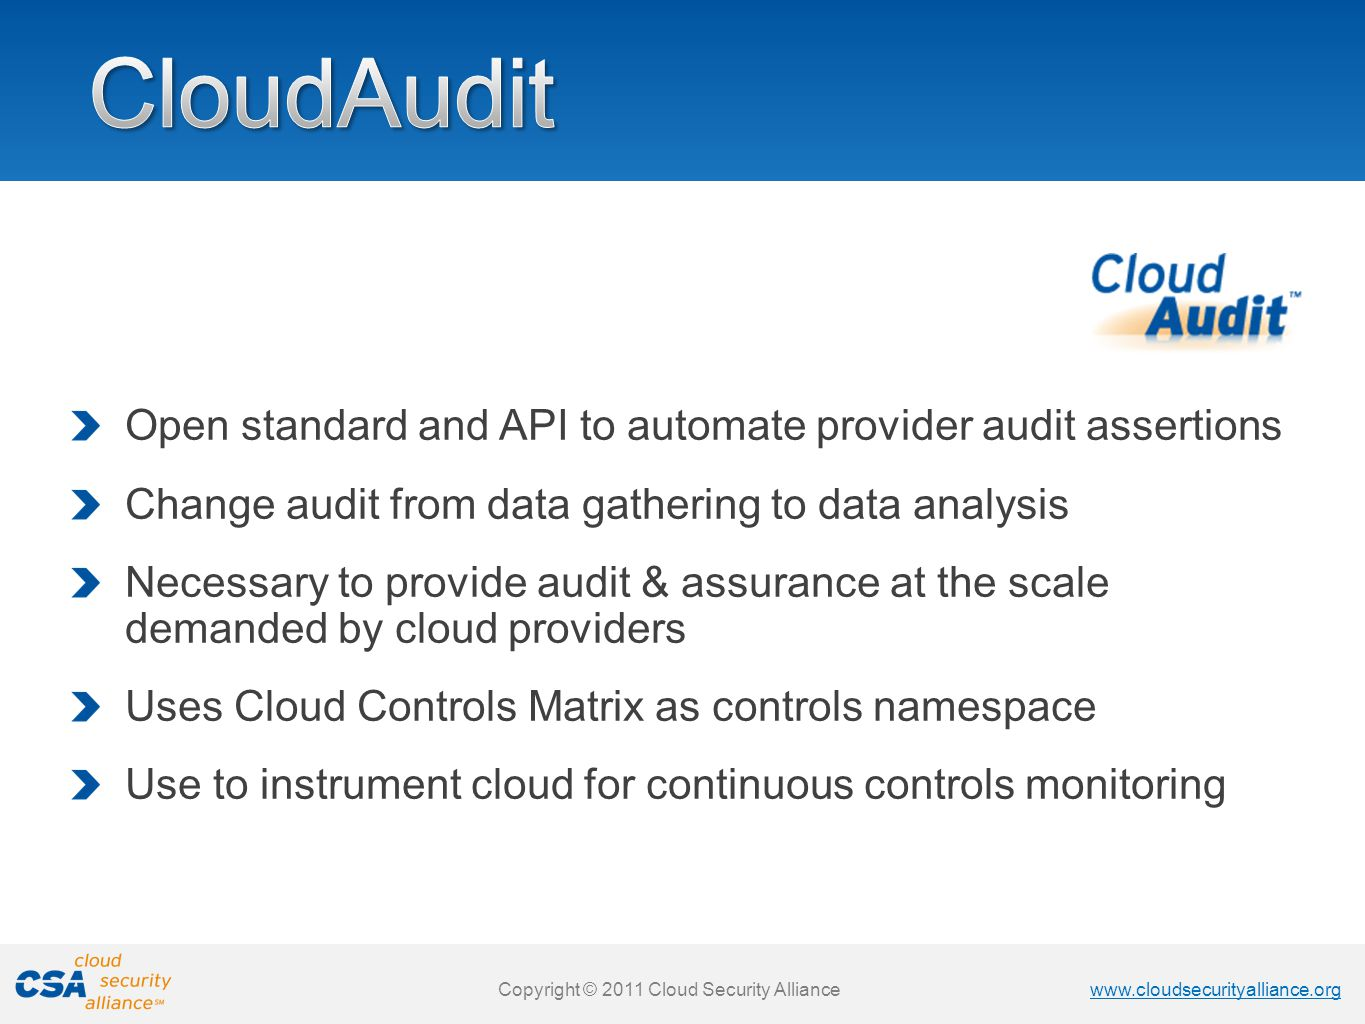 www.cloudsecurityalliance.org Copyright © 2011 Cloud Security Alliance www.cloudsecurityalliance.org Copyright © 2011 Cloud Security Alliance Open standard and API to automate provider audit assertions Change audit from data gathering to data analysis Necessary to provide audit & assurance at the scale demanded by cloud providers Uses Cloud Controls Matrix as controls namespace Use to instrument cloud for continuous controls monitoring